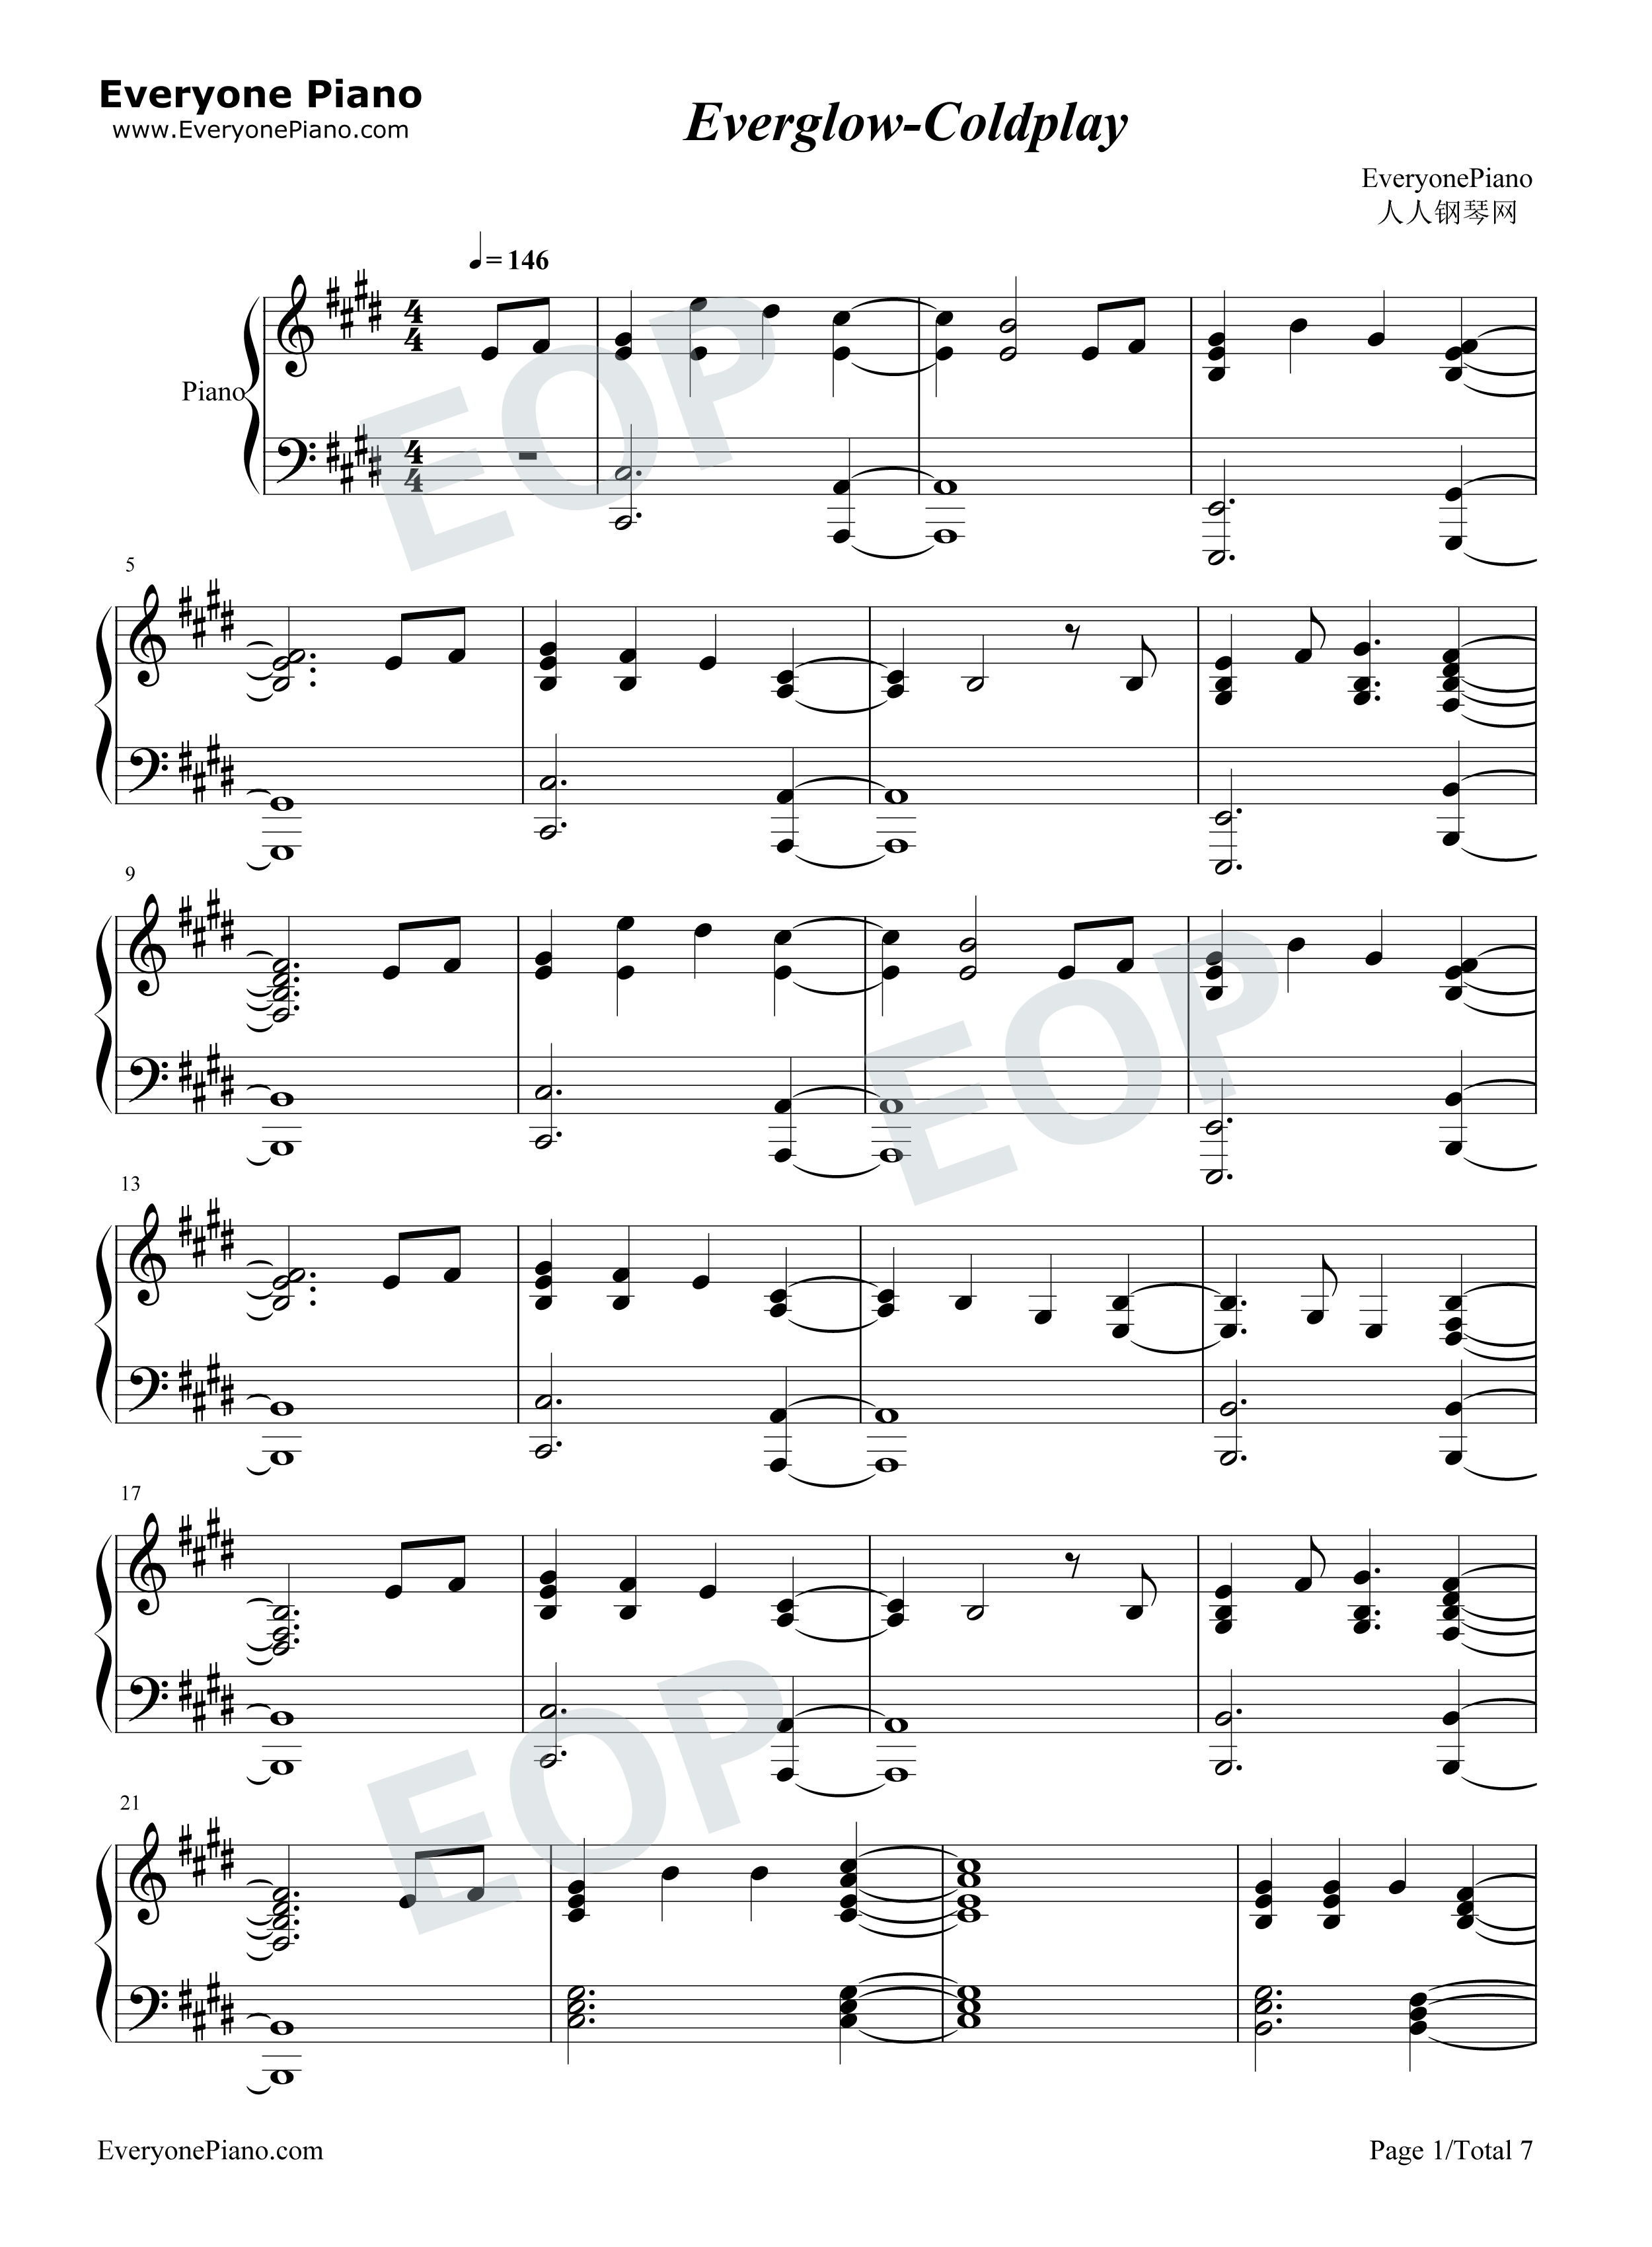 ... -Coldplay Stave Preview 1-Free Piano Sheet Music & Piano Chords